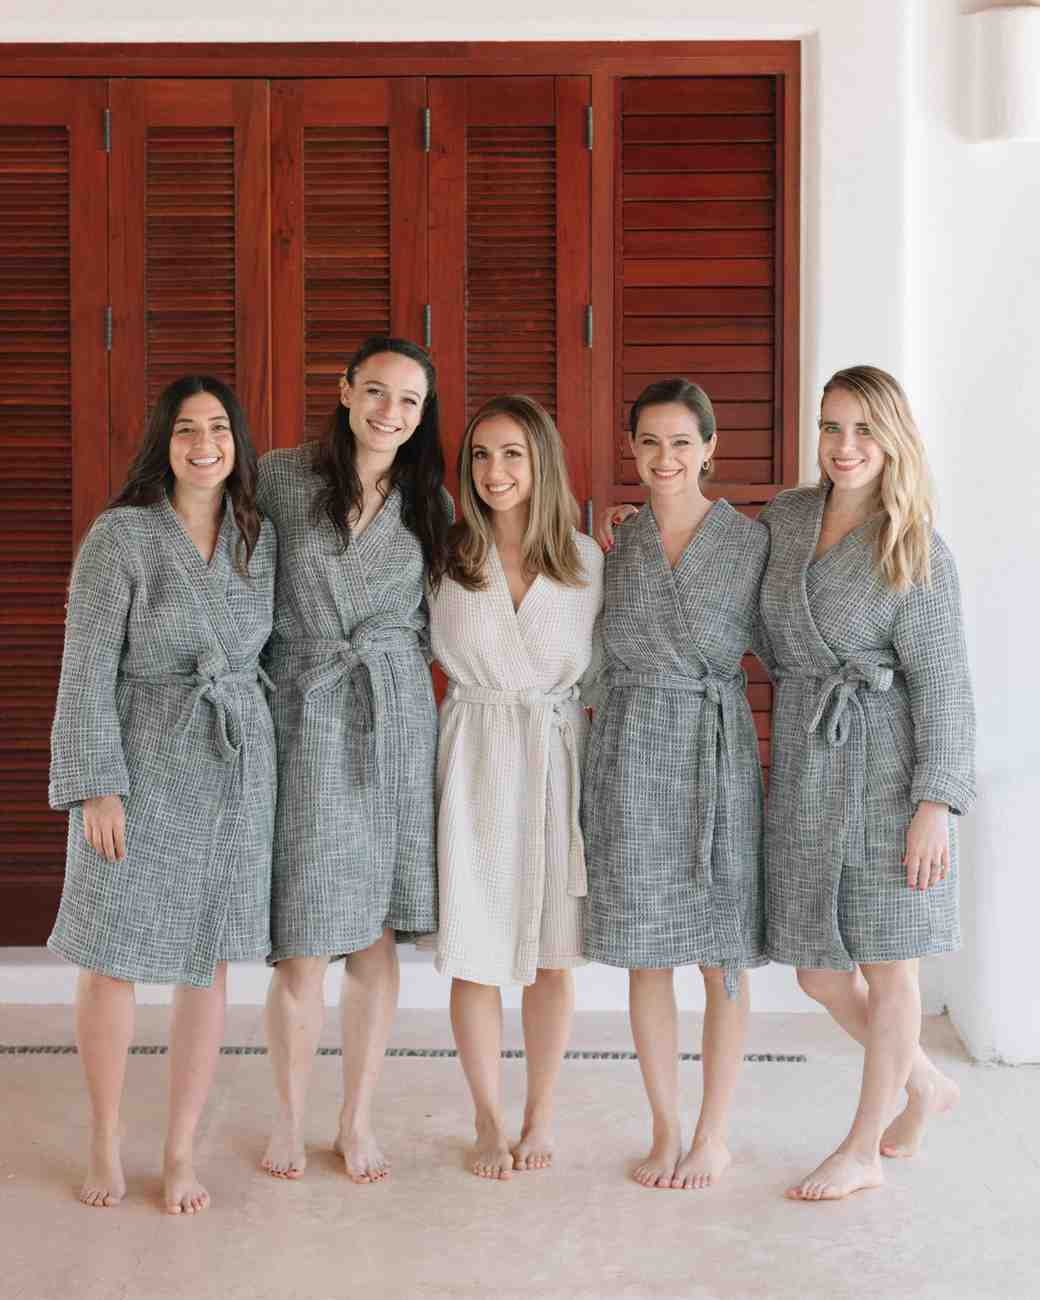 ariel trevor wedding tulum mexico getting ready robes